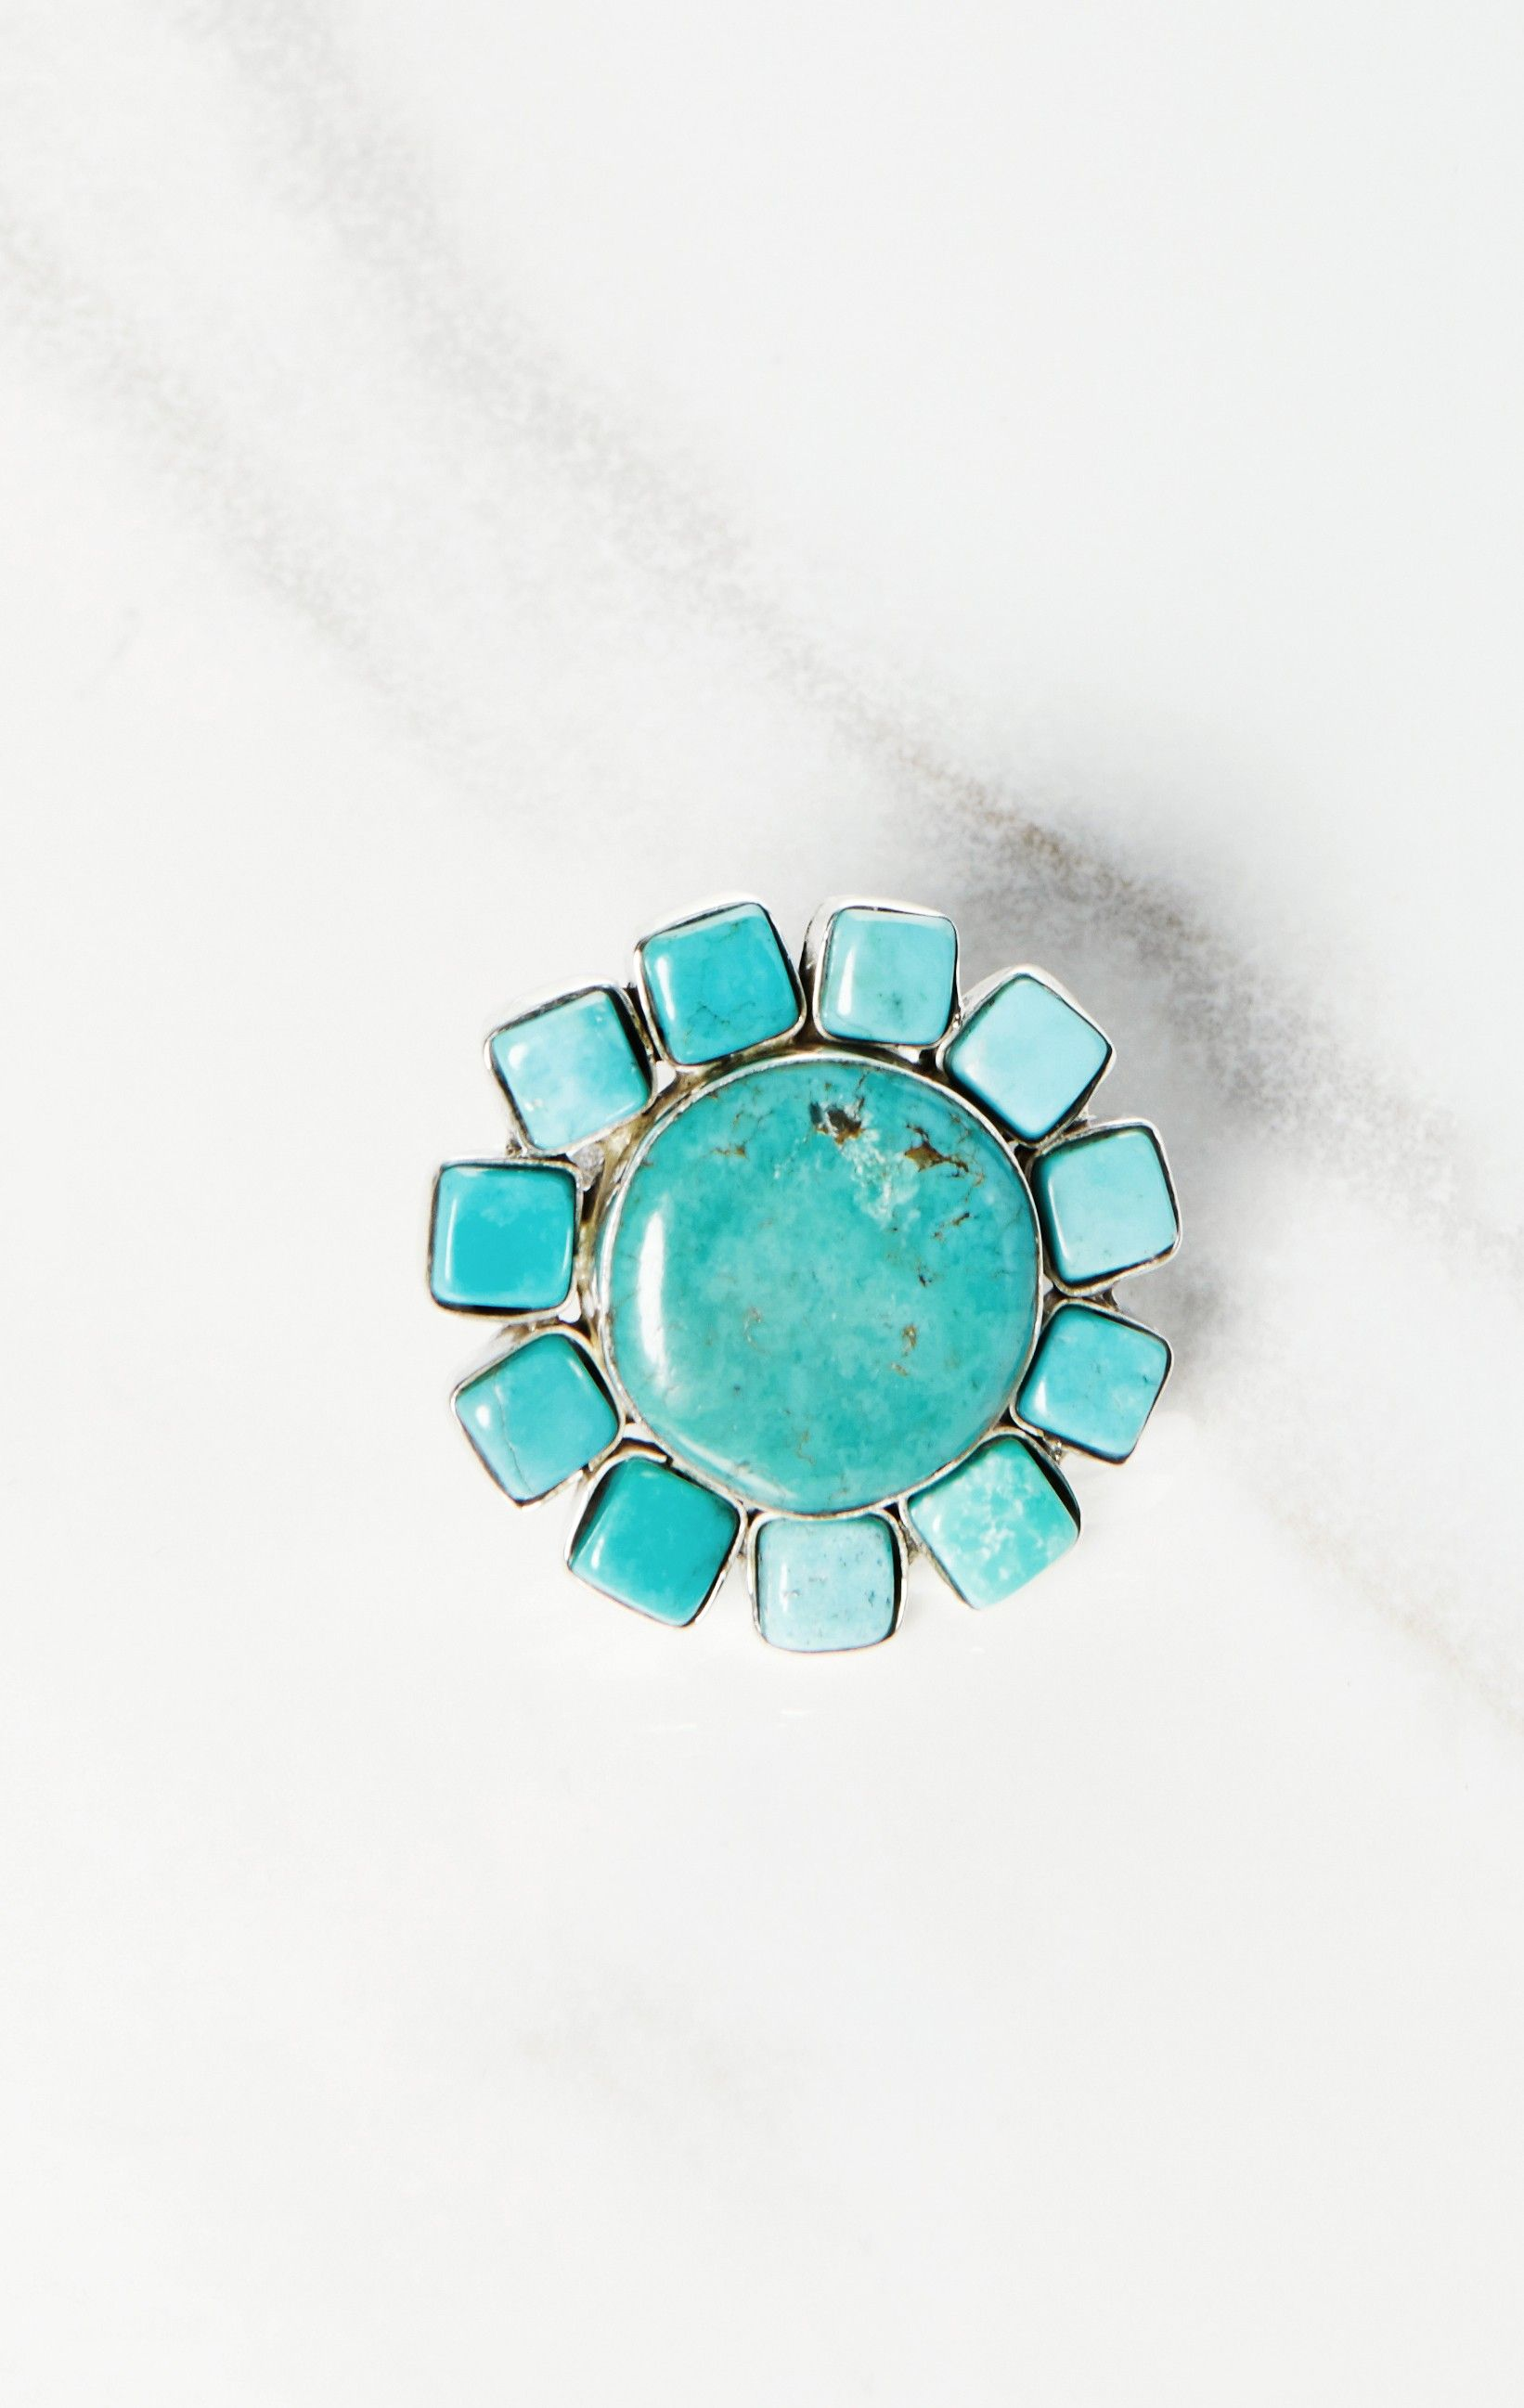 The Natalie B Jewelry Desert Flower Ring is a handmade genuine Chinese turquoise and sterling silver ring with adjustable closure and multi-stone accents. Complete the look with your other Natalie B Jewelry favorites.  Made in USASterling Silver, Turquoise